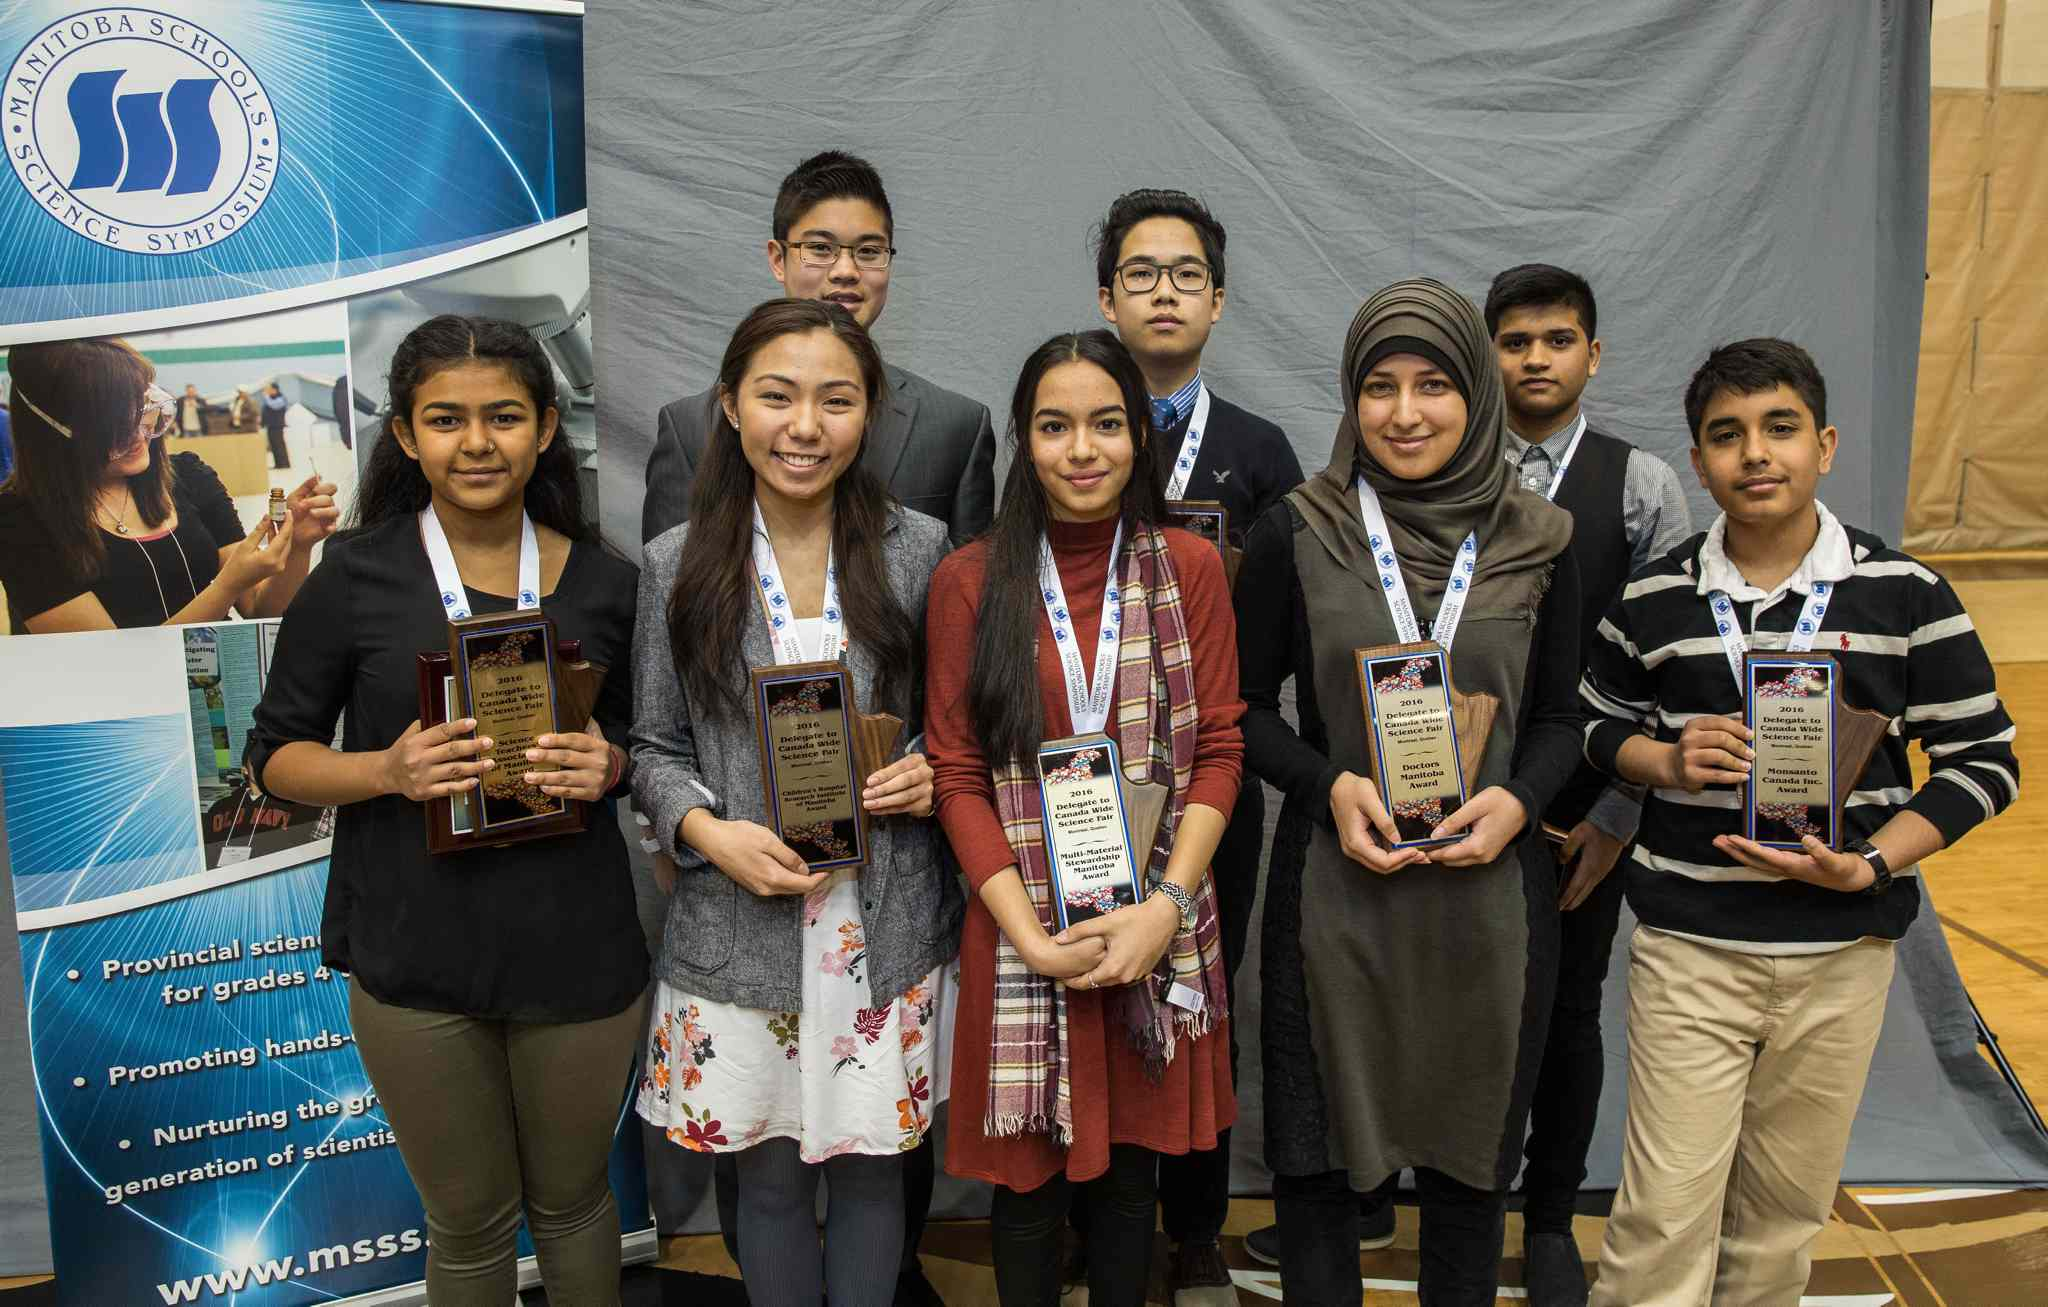 Eight students were chosen to represent Manitoba in the Canada-Wide Science Fair in Montreal in May. (Back row, from left) Justin Lin, Derek Yin, Himanshu Sharma. (from l-r front row) Maitry Mistry, Winnica Beltrano, Tooba Razi, Iqra Sahar Tariq and Rohan Sethi.